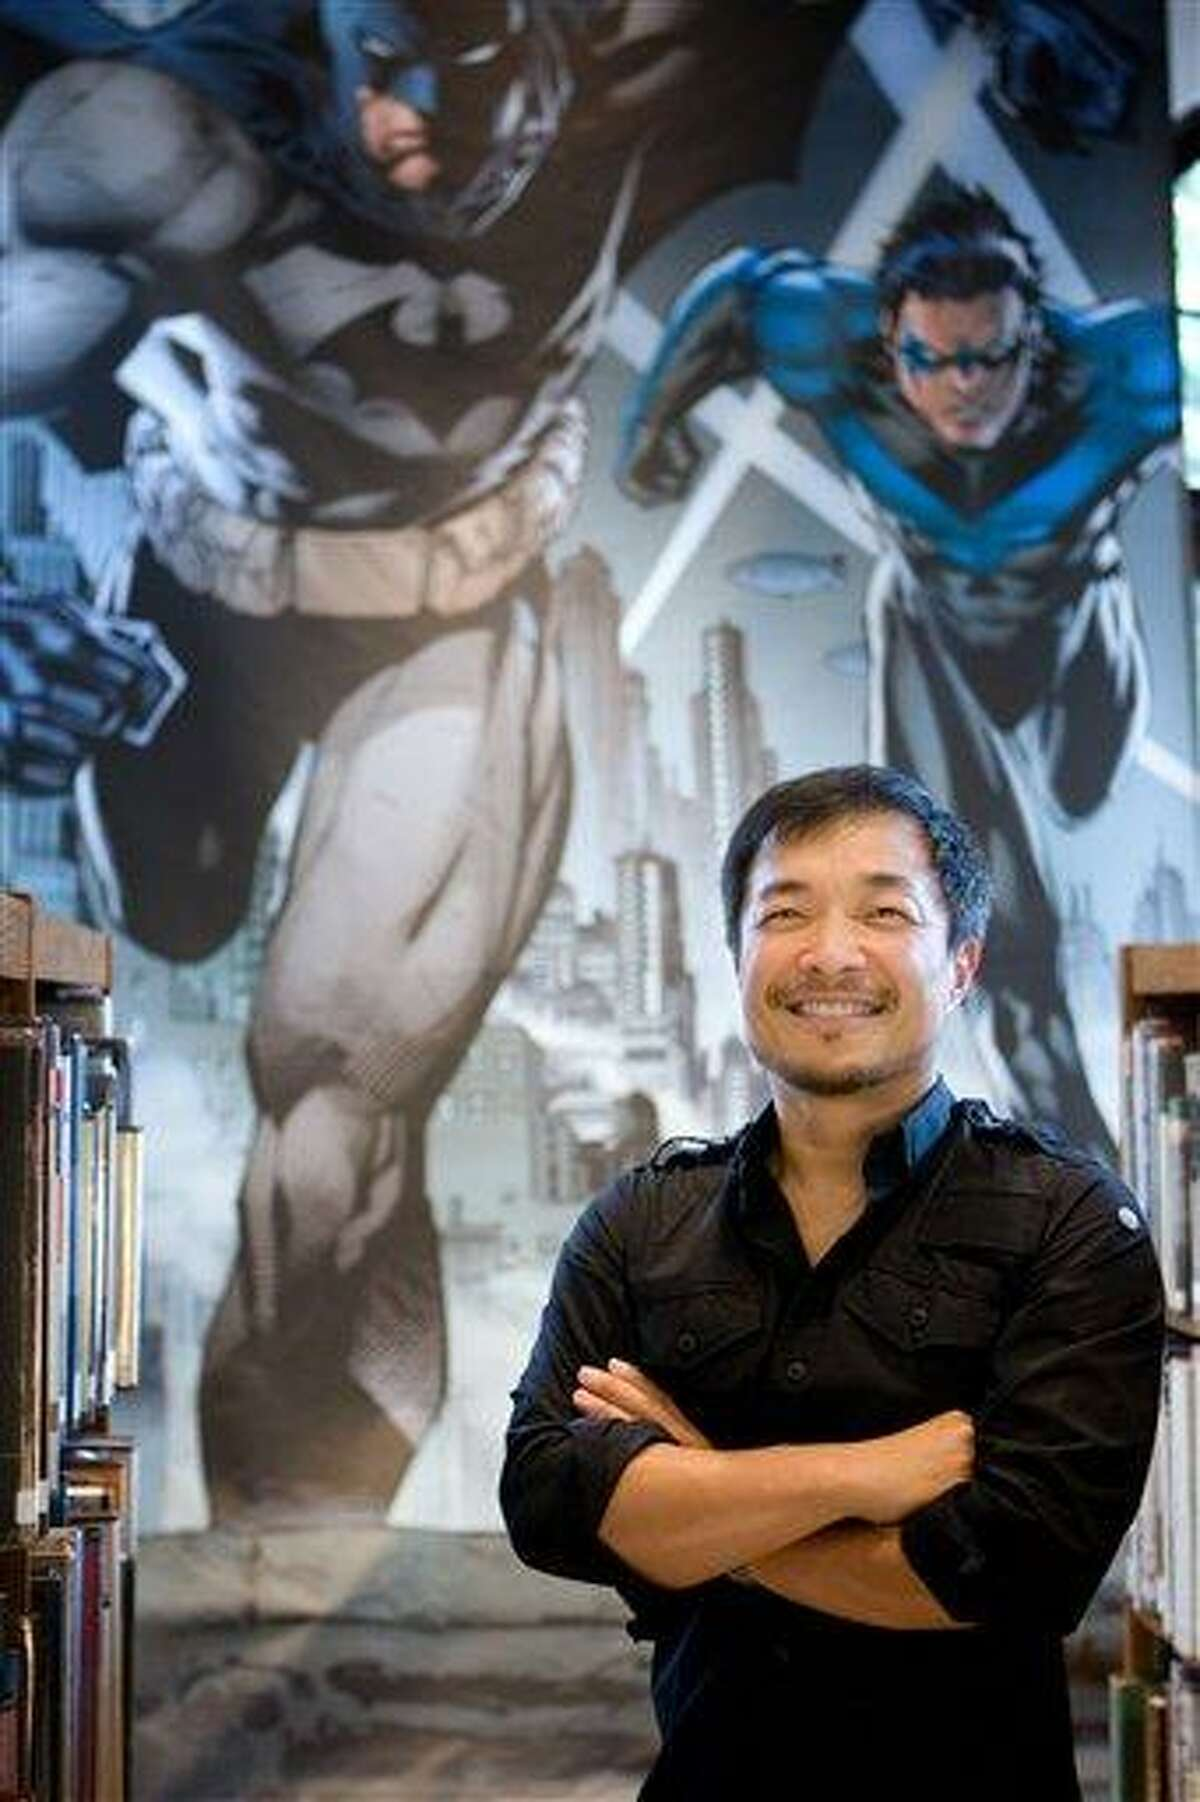 In this publicity mage released by DC Comics, DC Comics' co-publisher Jim Lee is shown. DC Comics is going back to the starting point in September, renumbering its entire lineup of DC Universe titles with No. 1 and retooling nearly all of its major characters, including Superman, Wonder Woman and Batman.(AP Photo/DC Comics, Victor Ha)